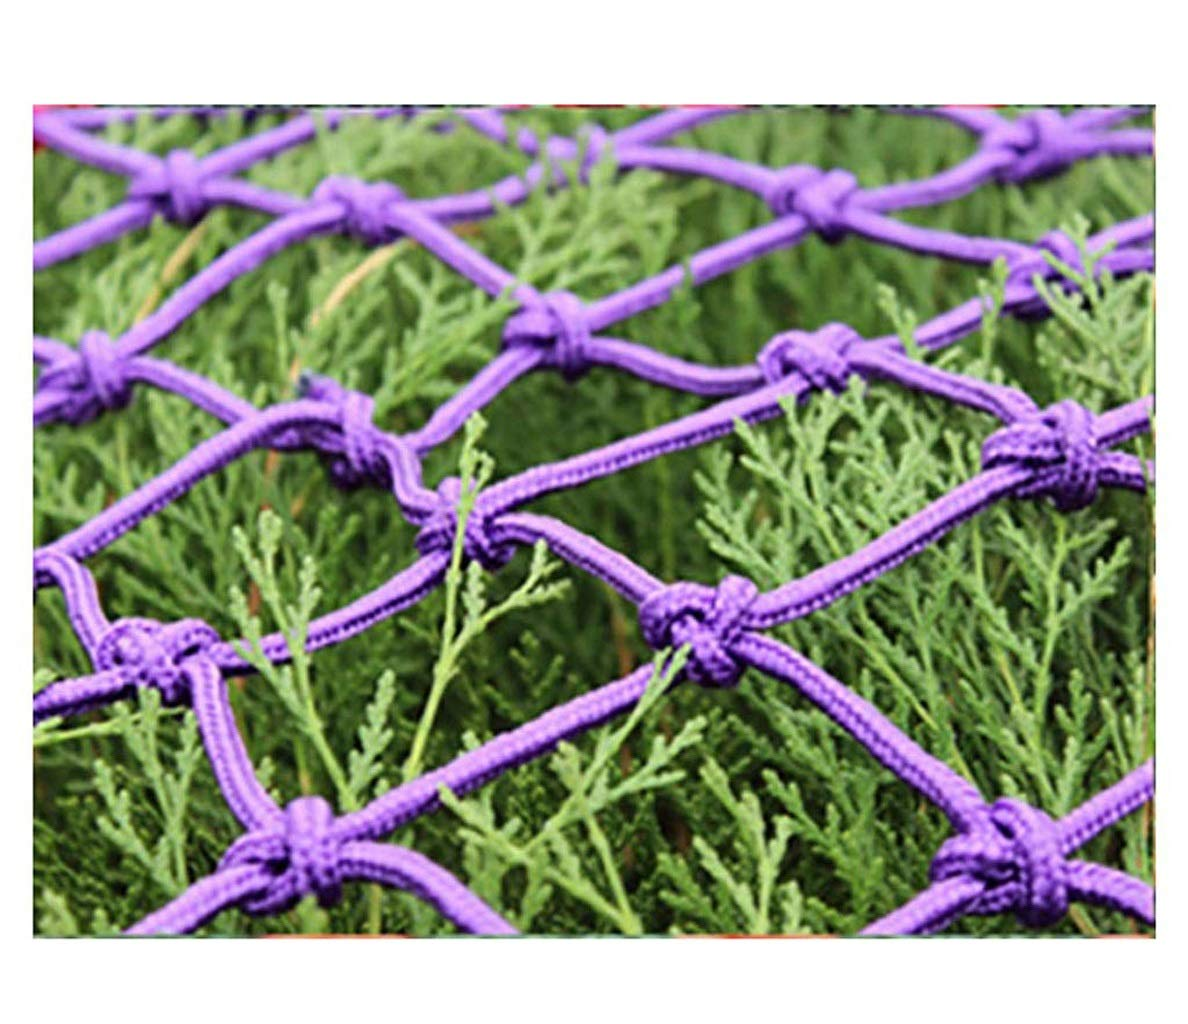 Baby Safety Outdoor Railing Net Stair Window Balcony Fence Child Protection Net Safety Net Decoration Anti-drop Shatter-resistant Net Nylon Rope Net Garden Lawn Purple Rope Thickness 10mm//mesh Hole 8c